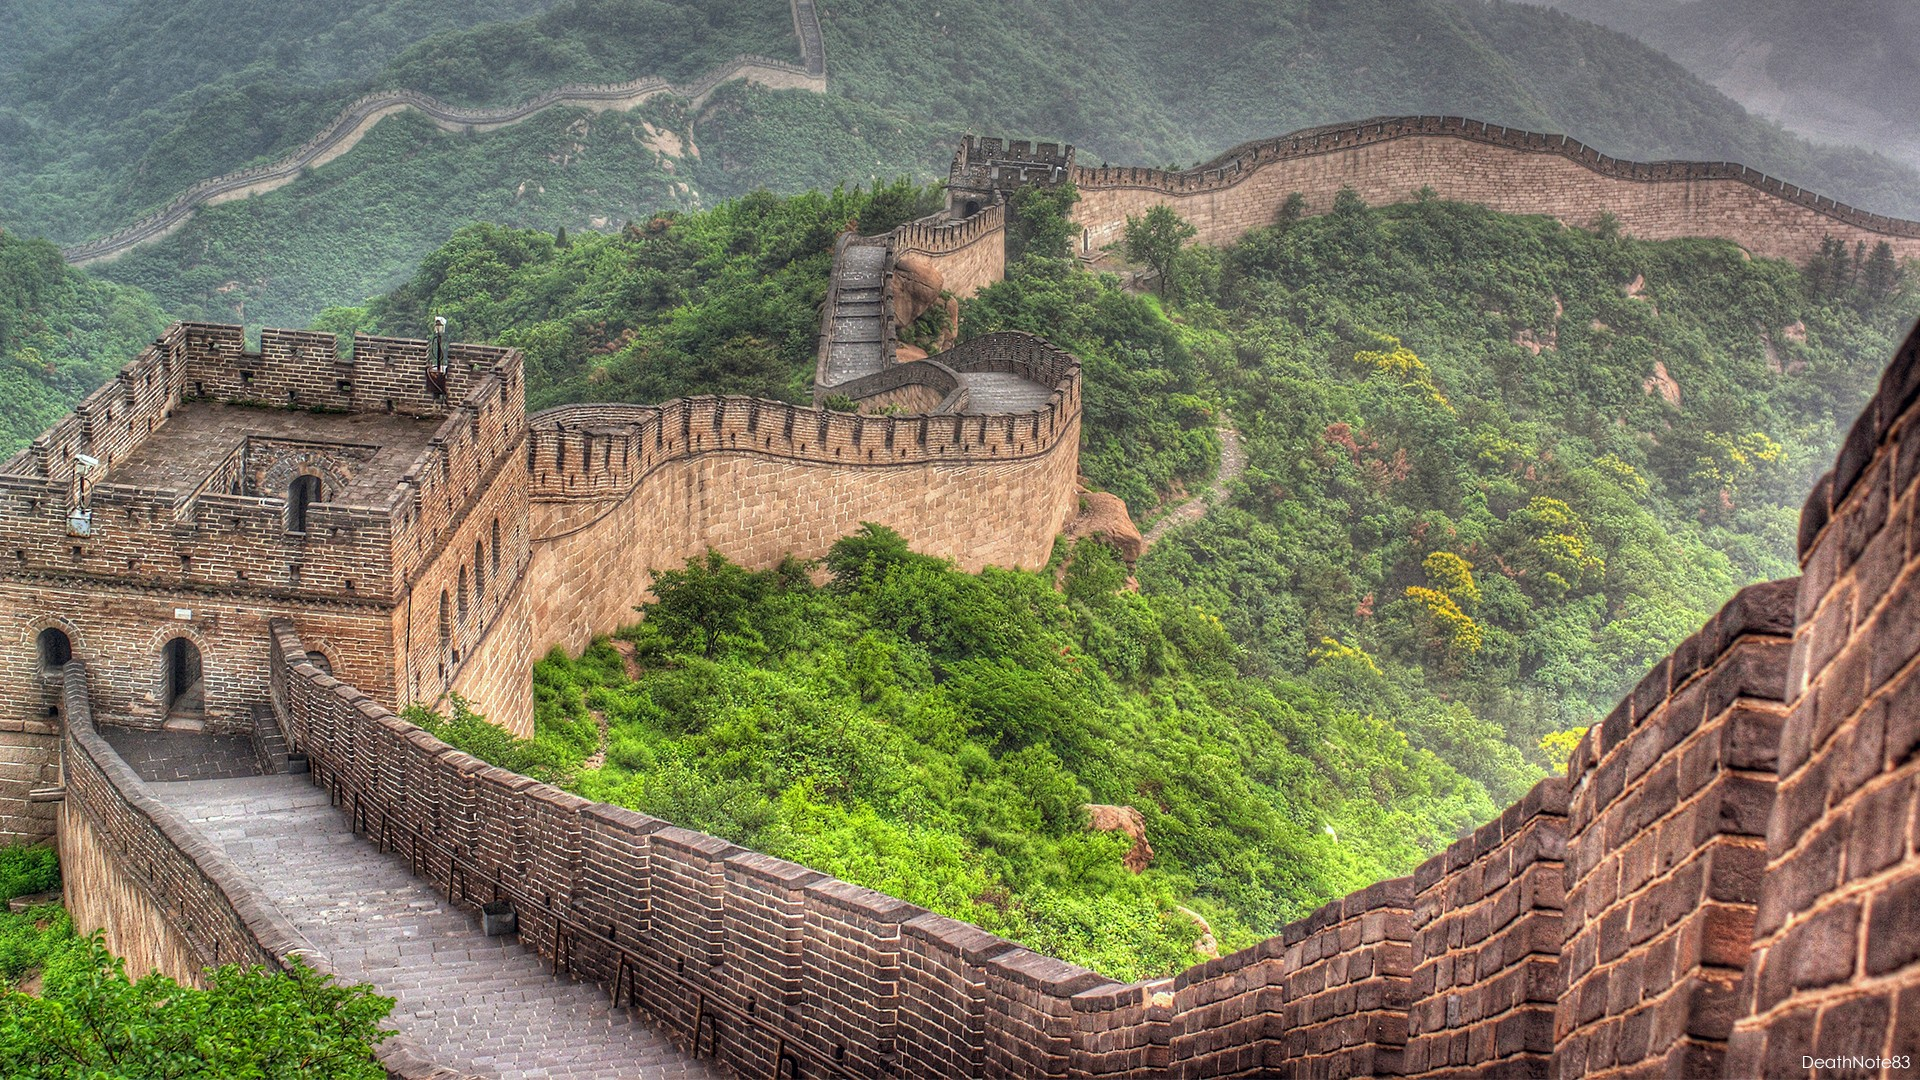 The Great Wall Of China Hd Wallpaper Background Image 1920x1080